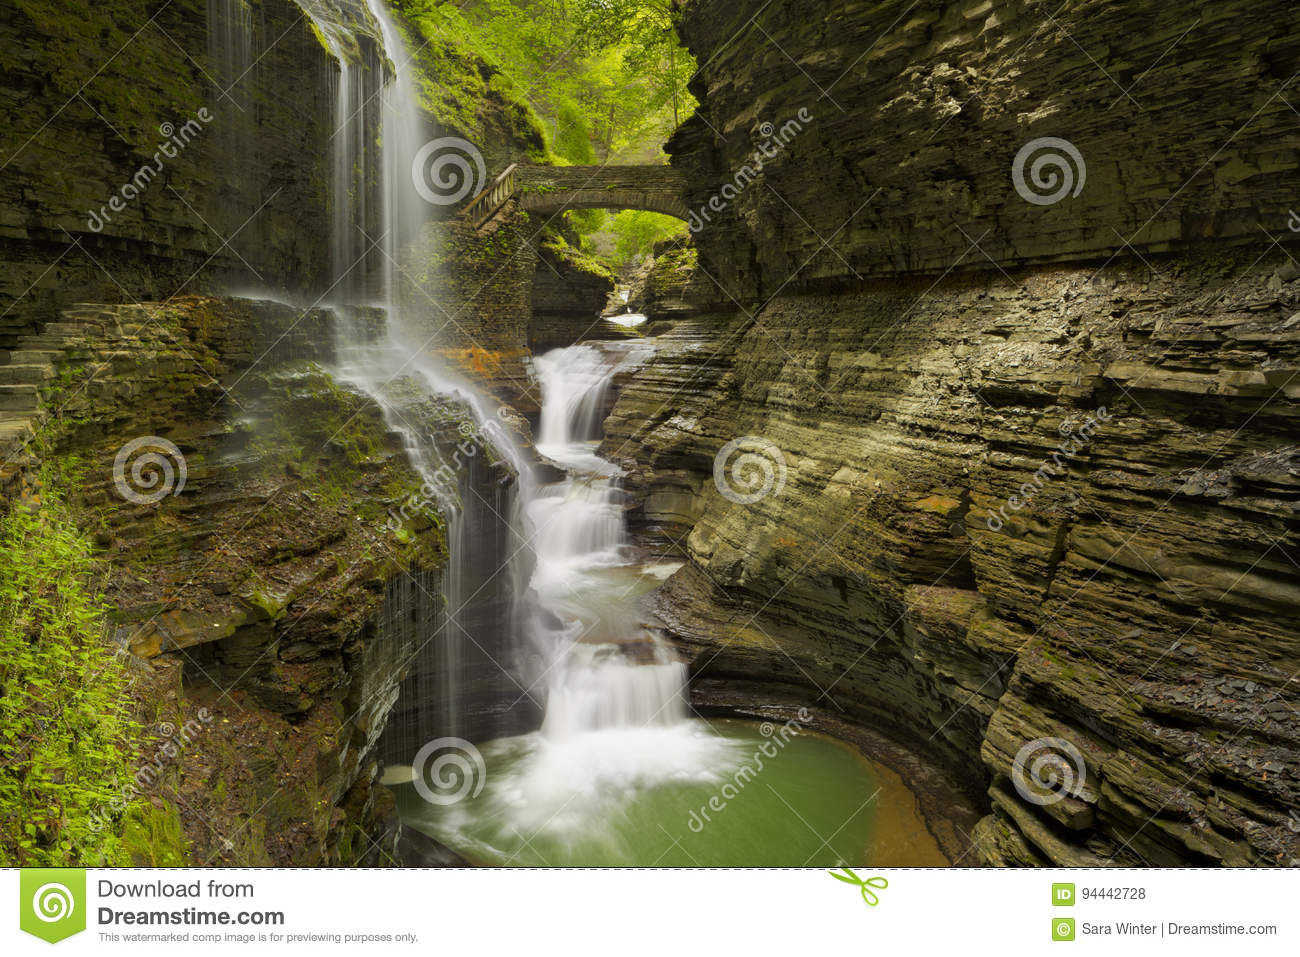 Waterfall in Watkins Glen Gorge in New York state, USA